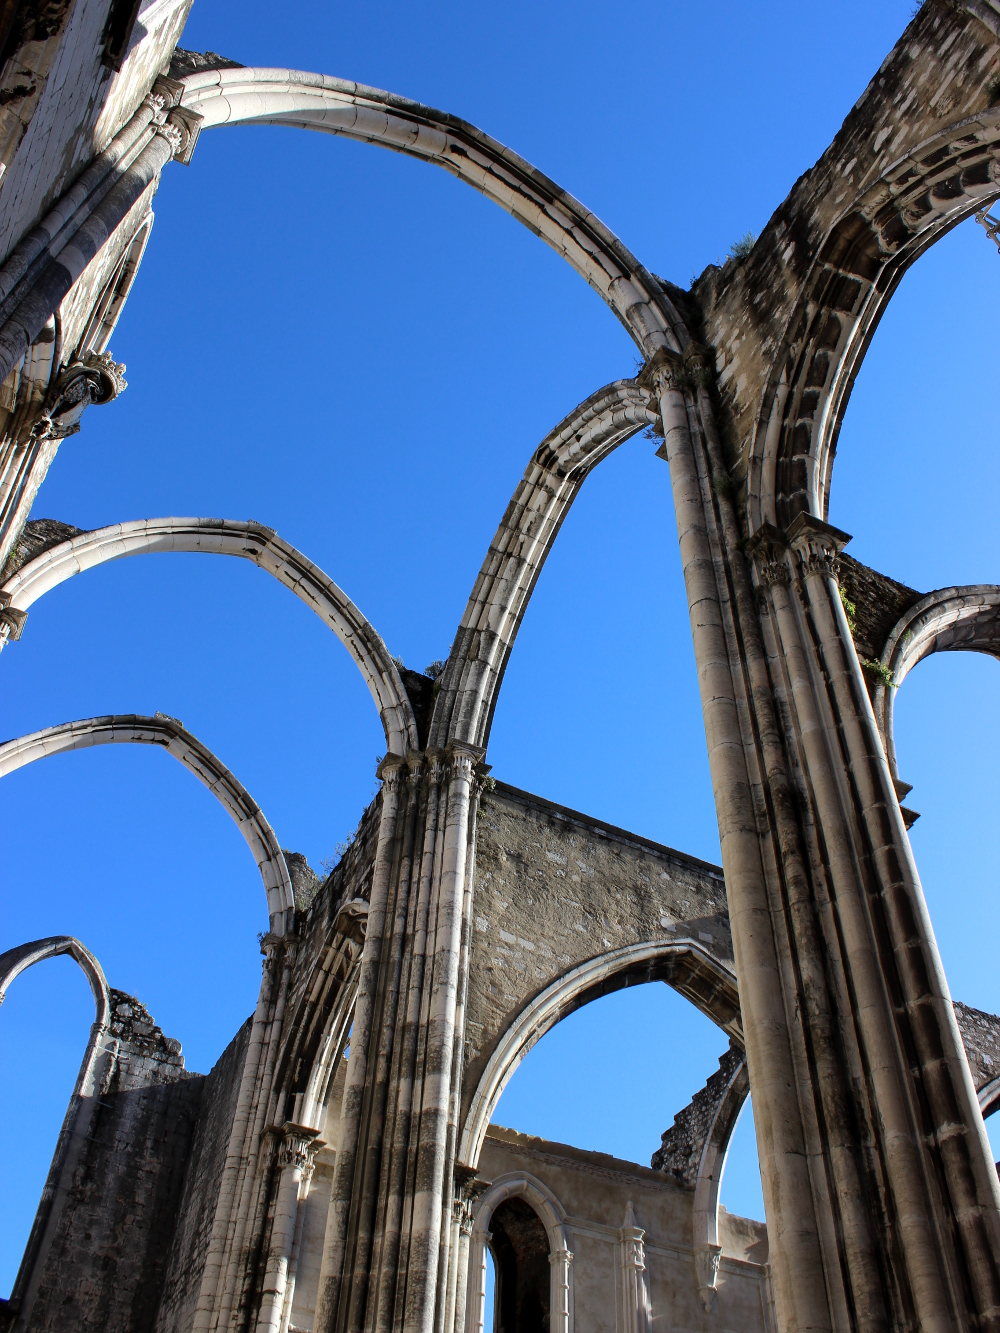 Lissabon Lisbon Lisboa Travel Guide Tipps Igreja do Carmo Museum Archeological